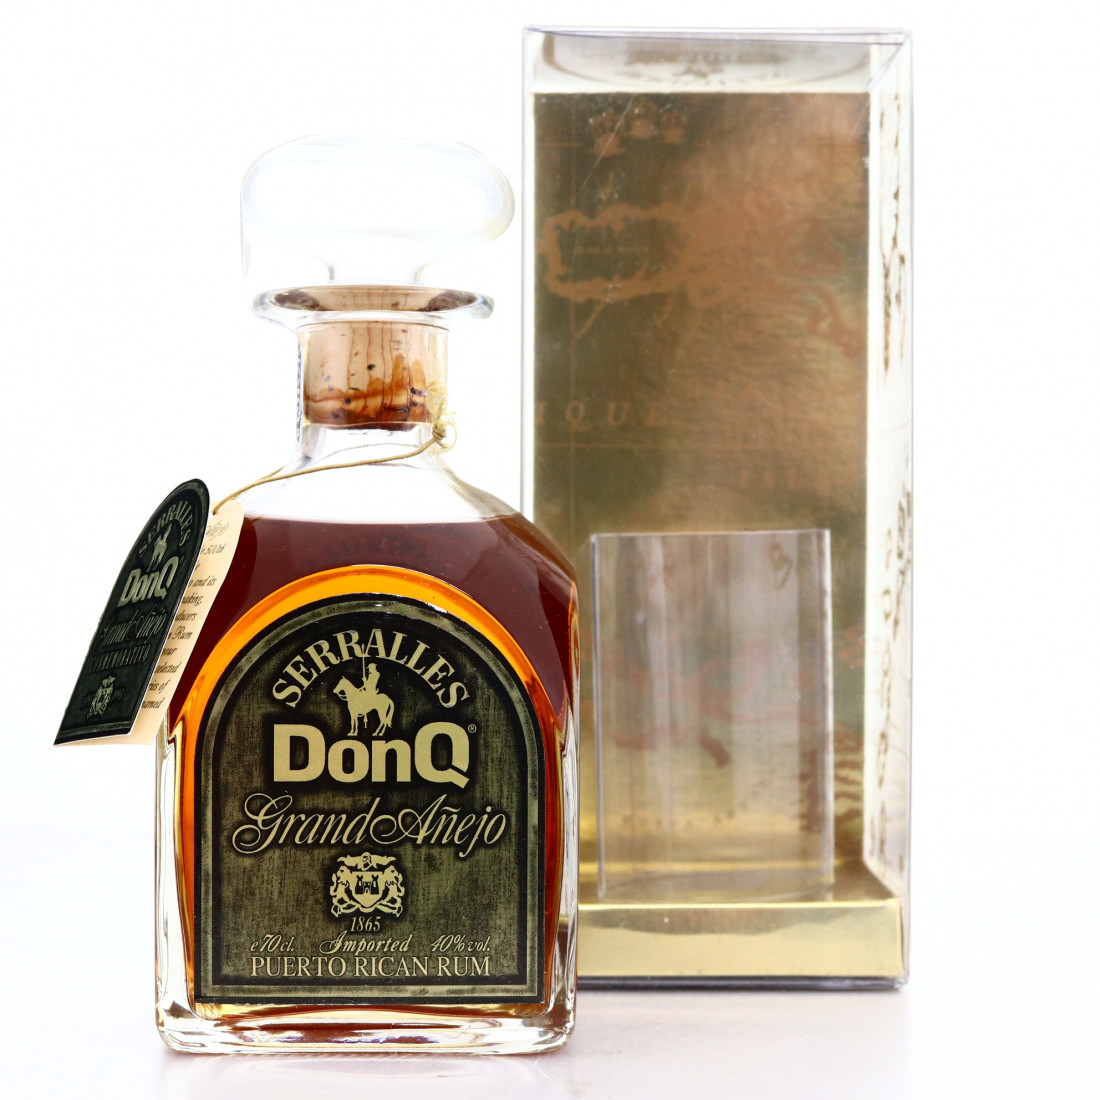 Don Q Grand Anejo Commemorativo 1993